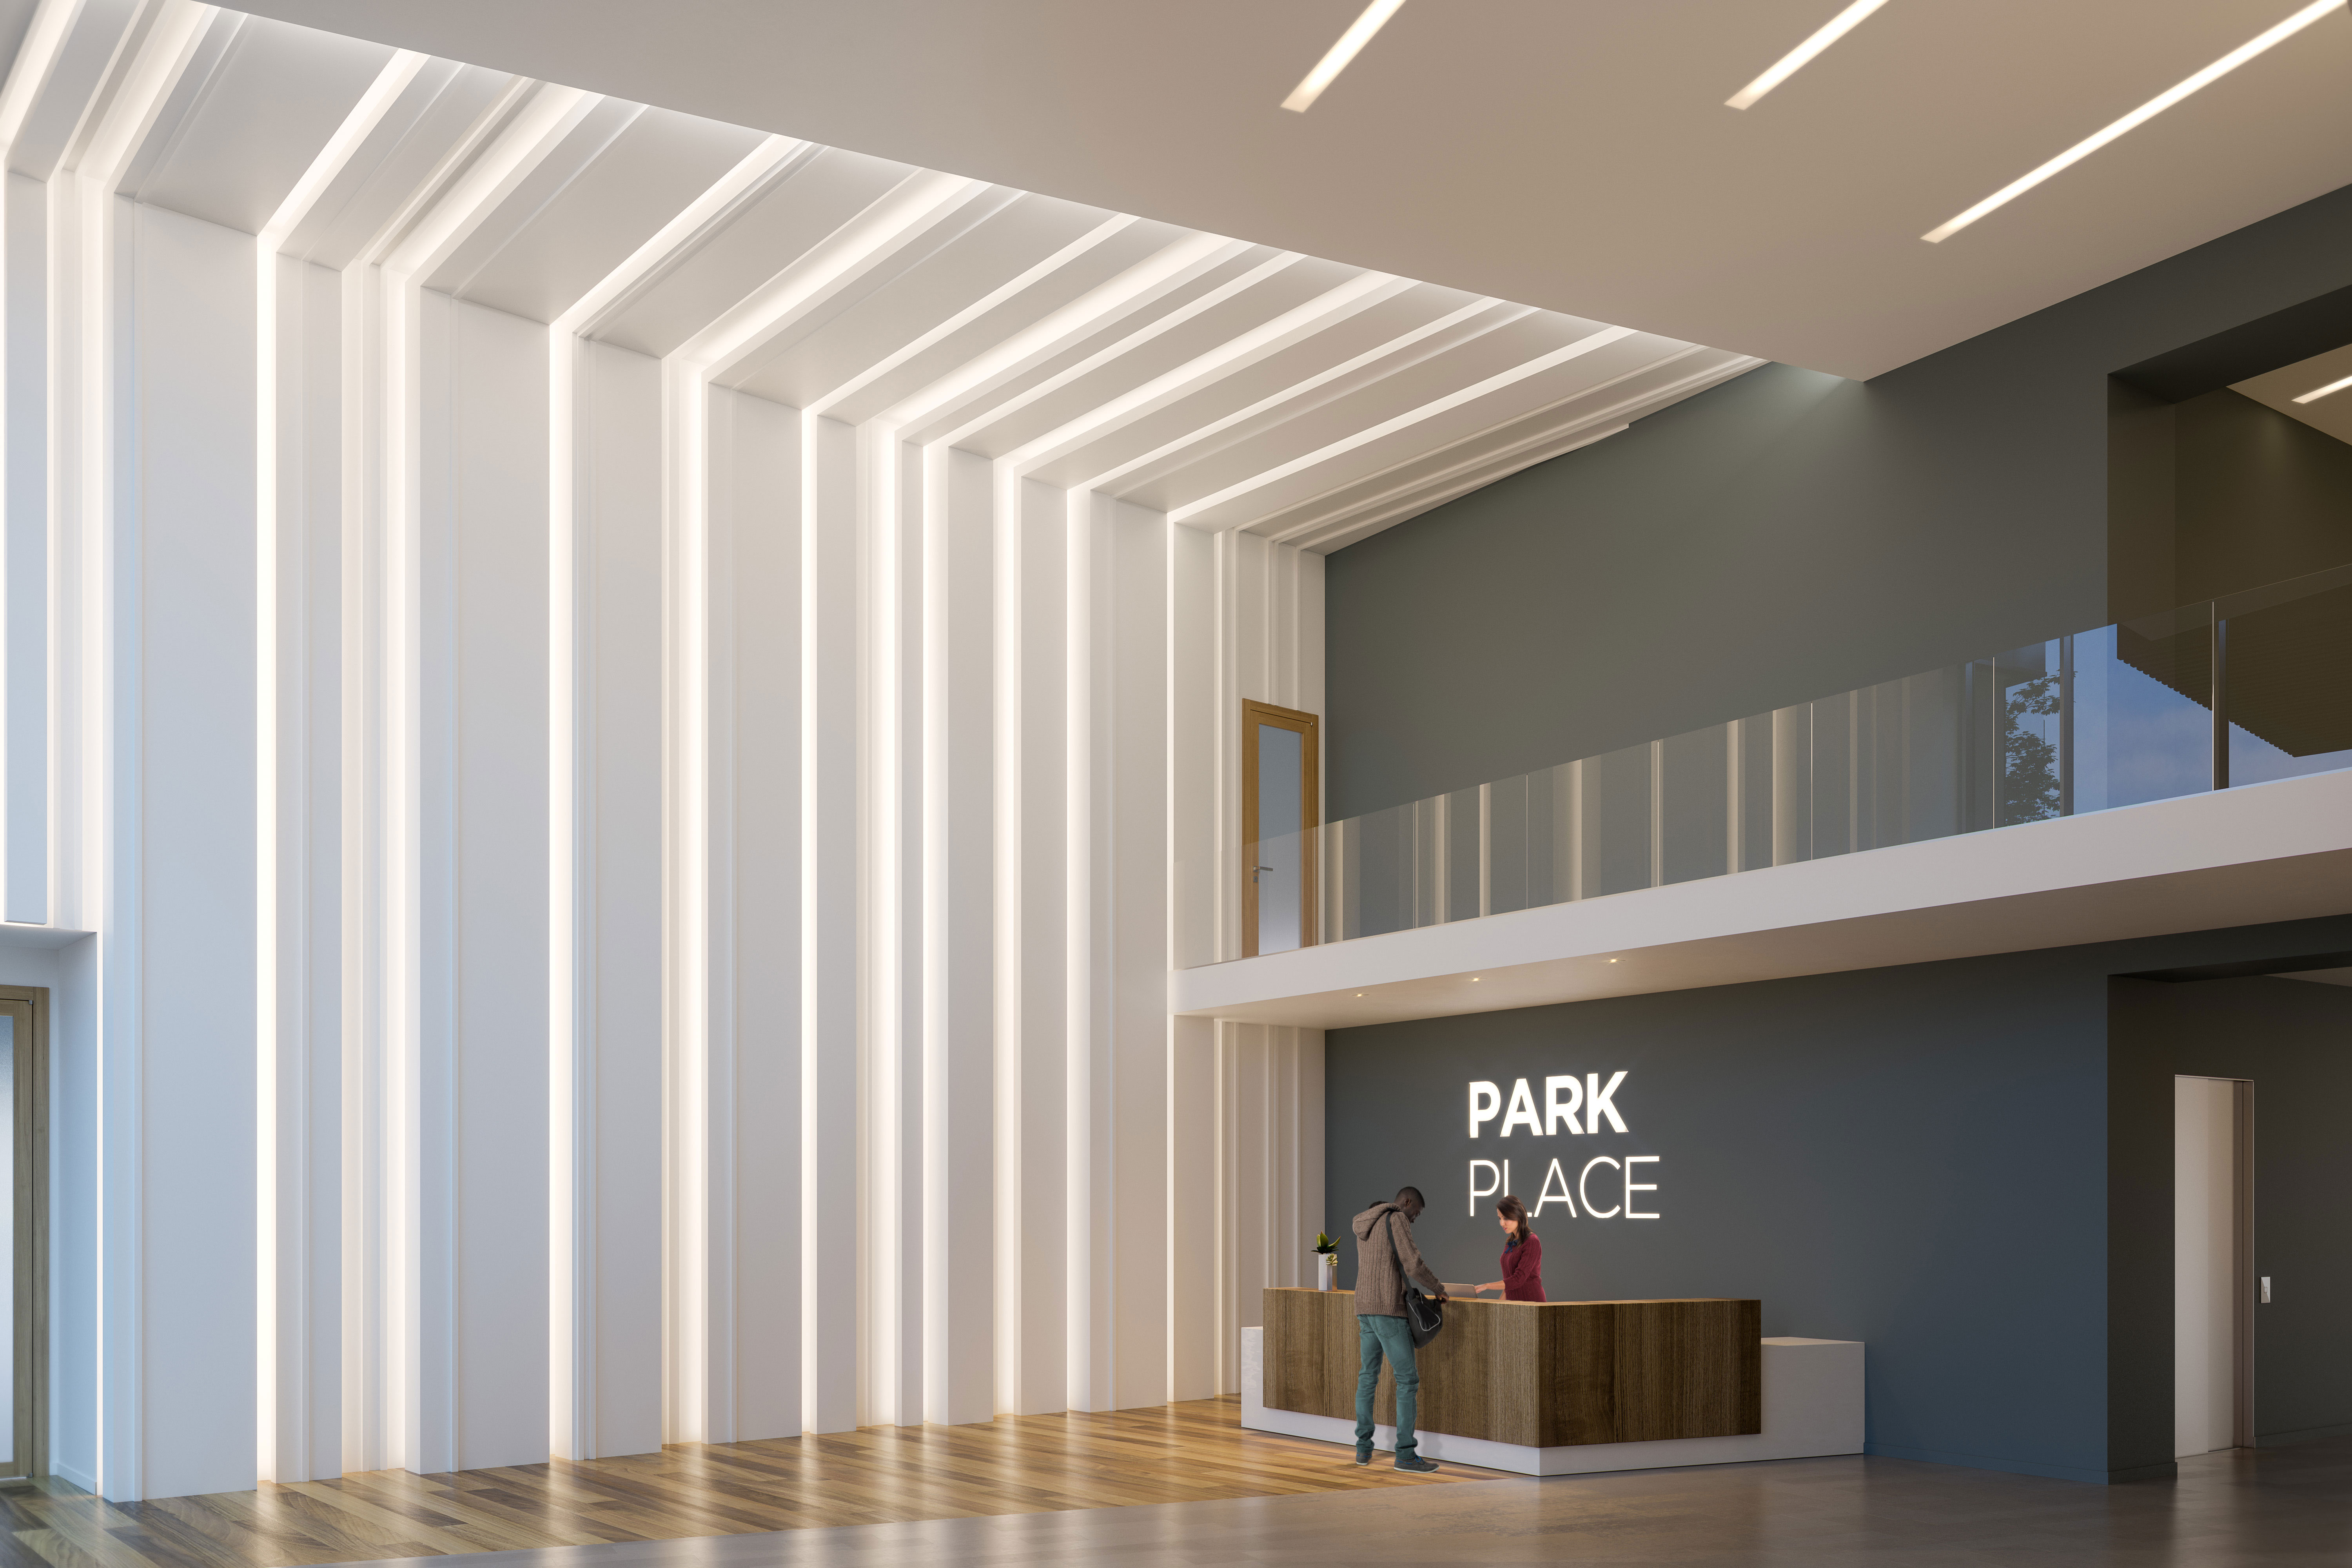 Park Place Lobby Rendering. CLICK for VR Experience